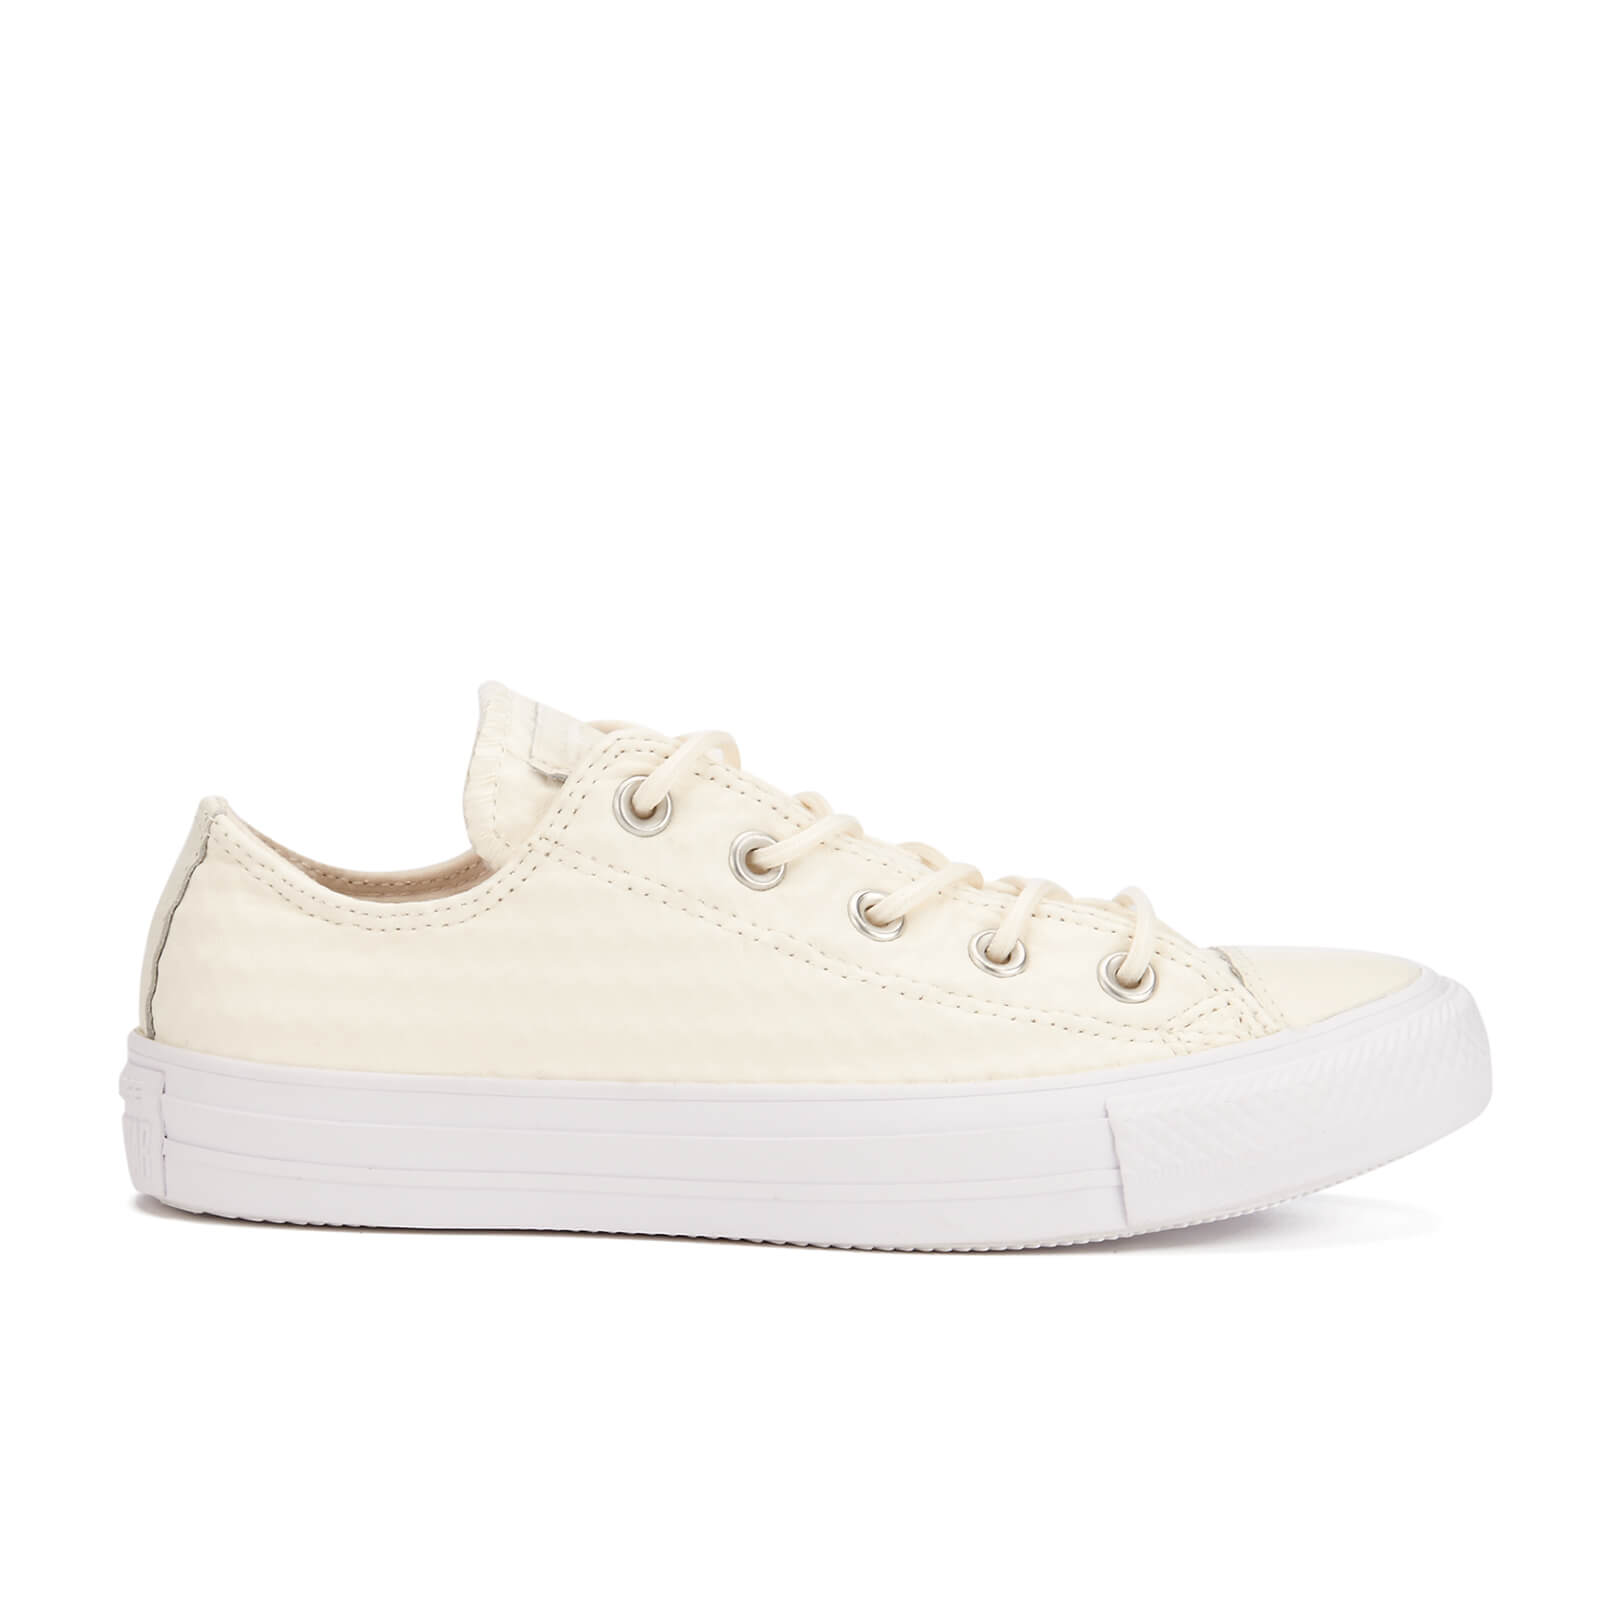 4d92b9e0d5ee Converse Women s Chuck Taylor All Star Craft Leather Ox Trainers - White  Monochrome - Free UK Delivery over £50